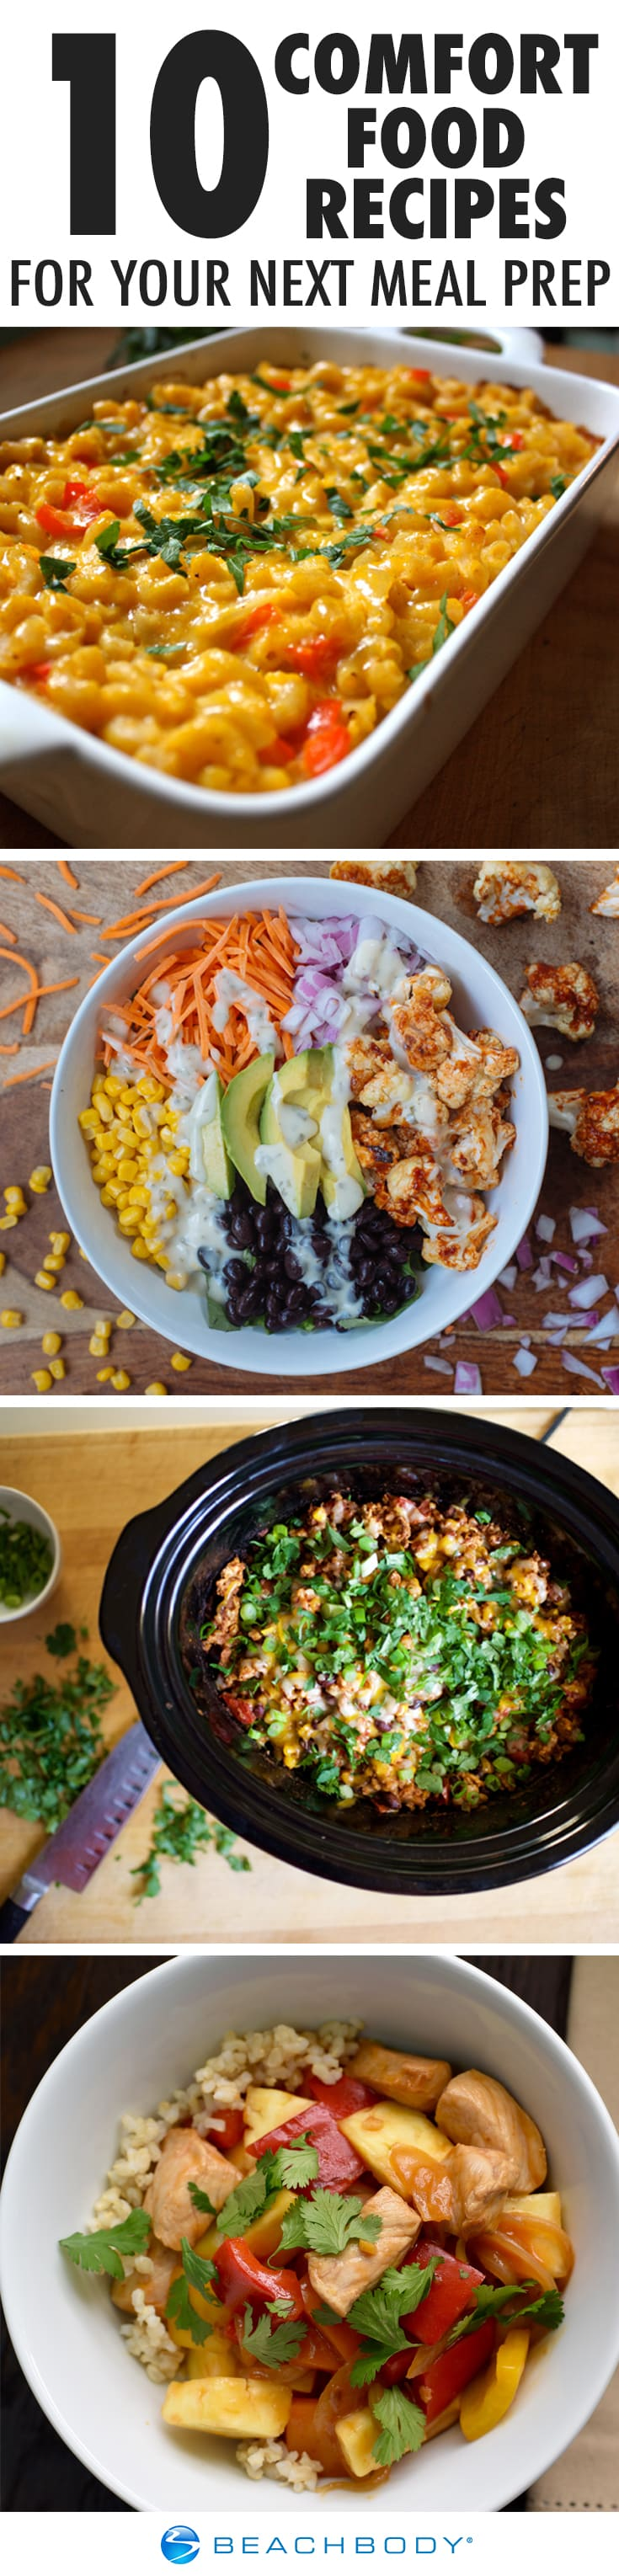 10 comfort food recipes to try in your next meal prep the 10 comfort food recipes to try in your next meal prep mealprep mealplan forumfinder Gallery